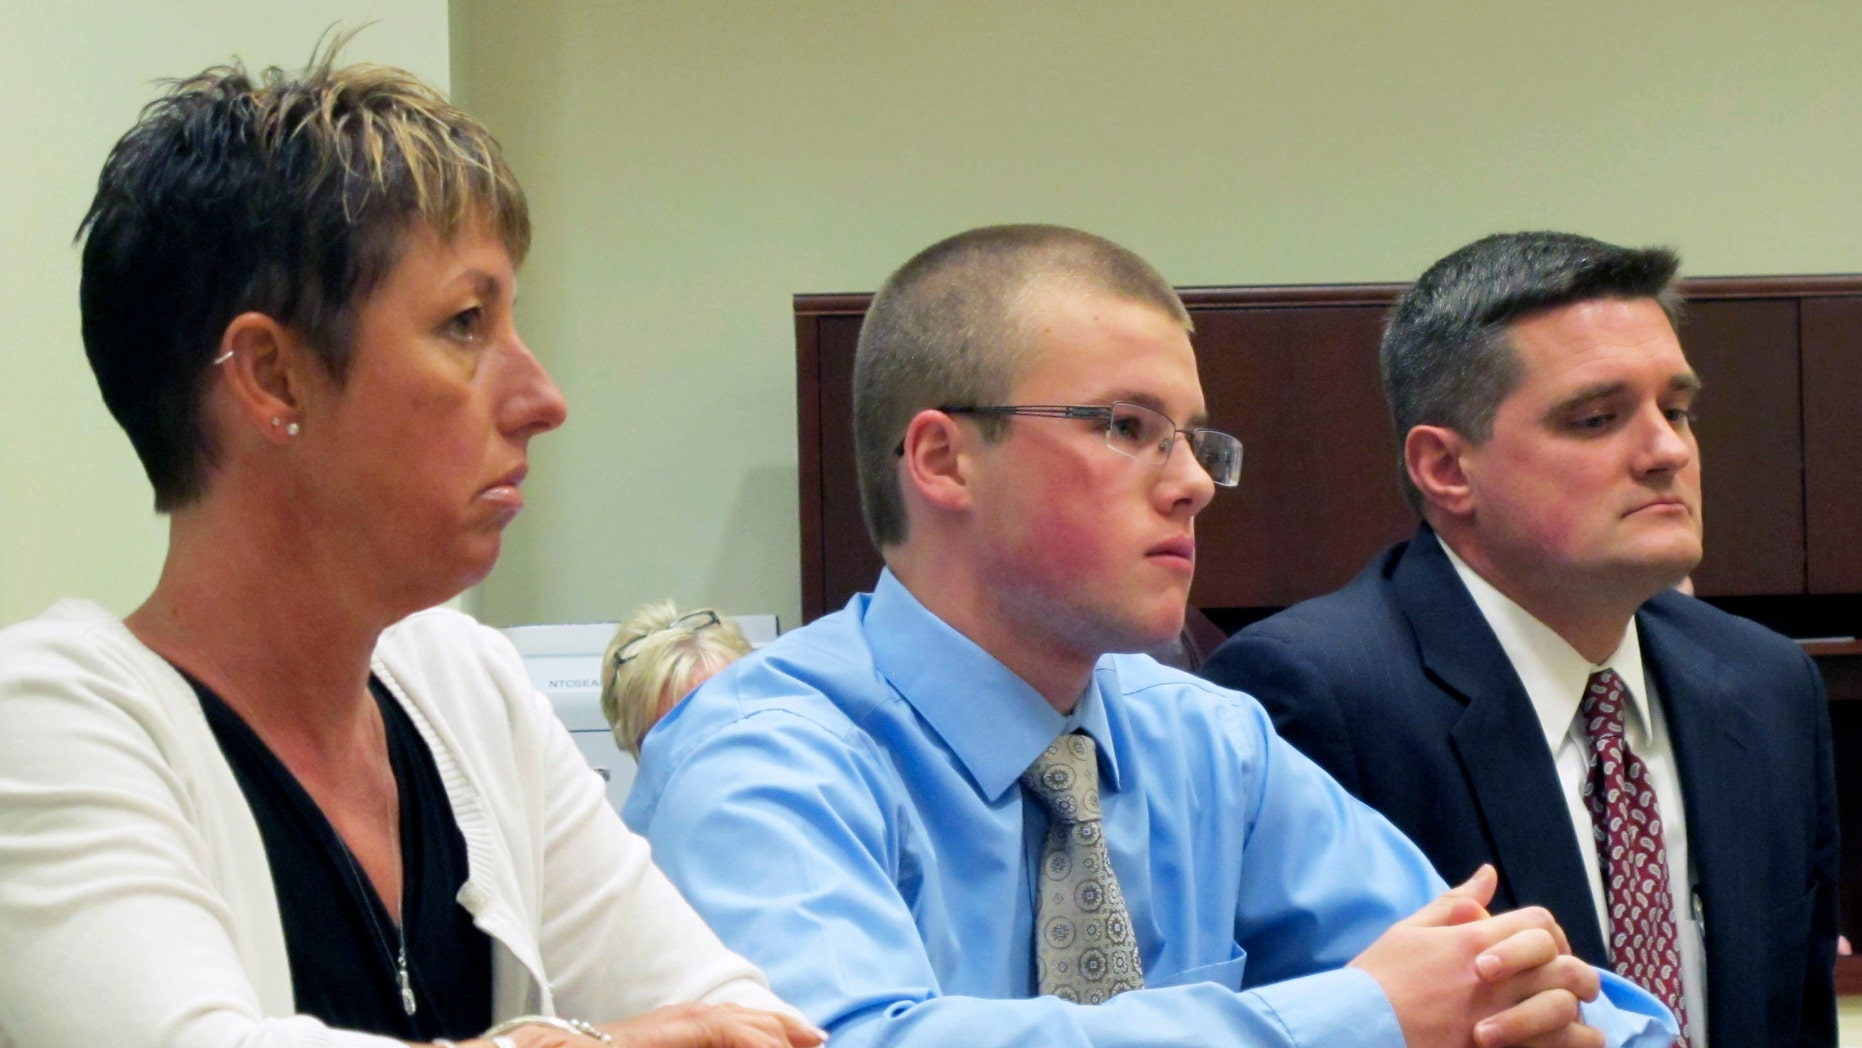 Oct. 22, 2012: Tyler Pagenstecher, 18, center, listens in juvenile court, in Lebanon, Ohio, as a judge sentences him to a minimum of six months in a juvenile jail stemming from his conviction on drug-trafficking charges. Pagenstecher is flanked by his mother, 50-year-old Daffney Pagenstecher, and his attorney, Mike O'Neill.